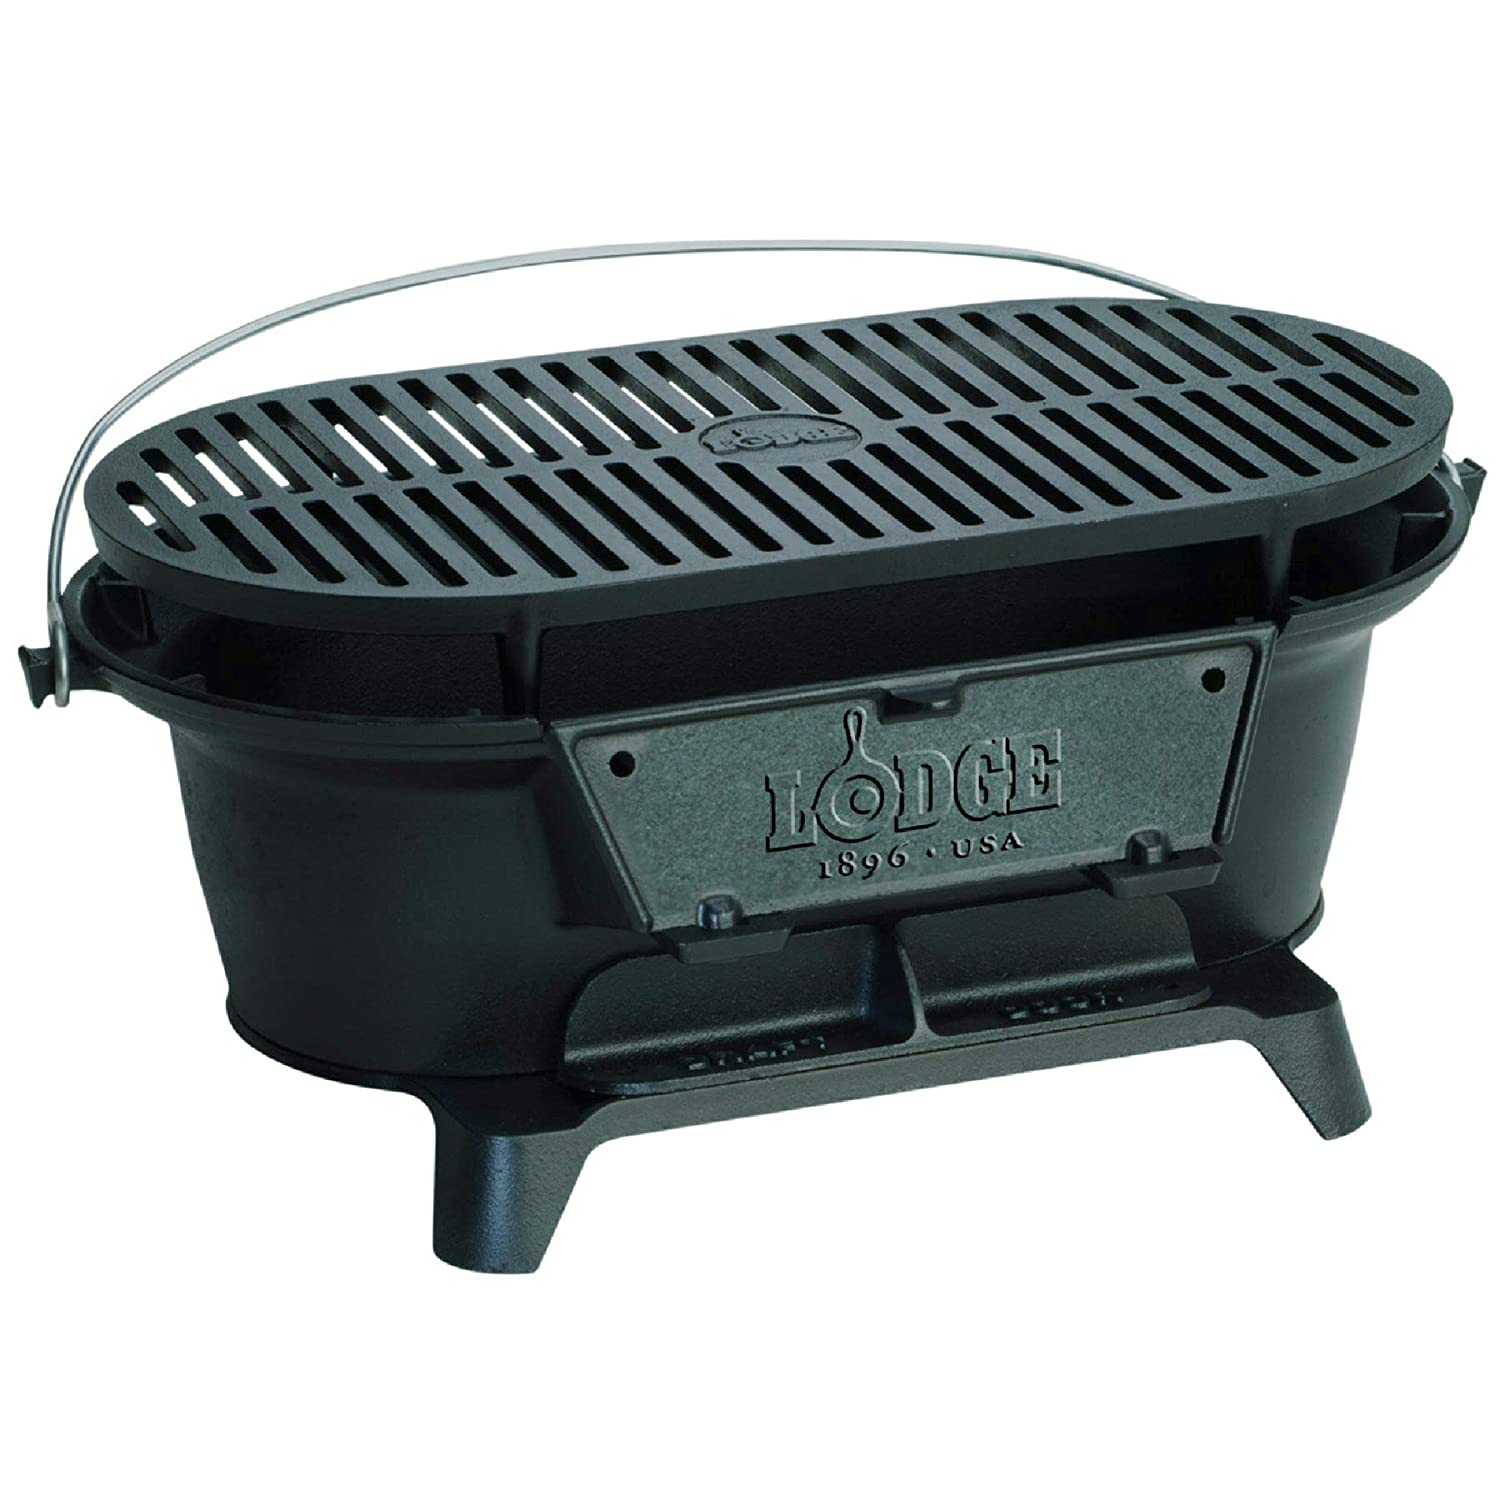 Lodge Cast Iron Sportsman\'s Grill. Large Charcoal Hibachi-Style Grill for  Picnics, Tailgaiting, Camping or Patio. Two Adjustable Heights.